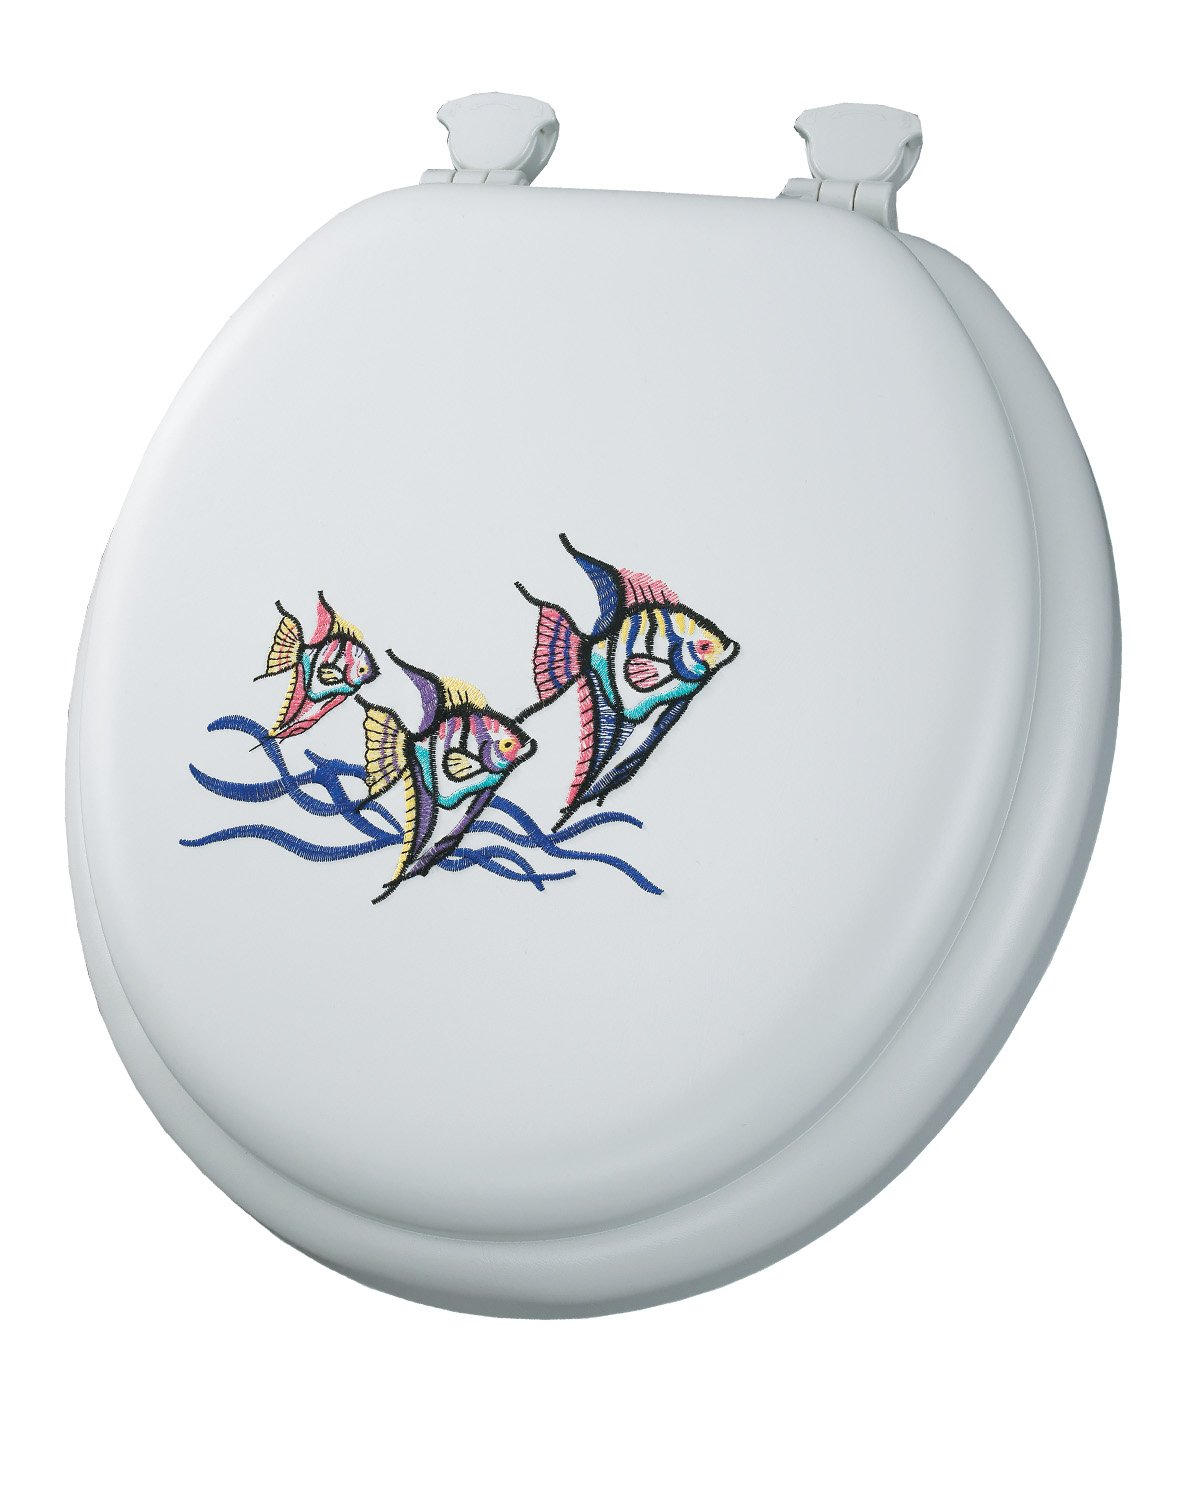 Mayfair 1322EC 000 Tropical Fish Embroidered Soft Toilet Seat With Lift Off Hing